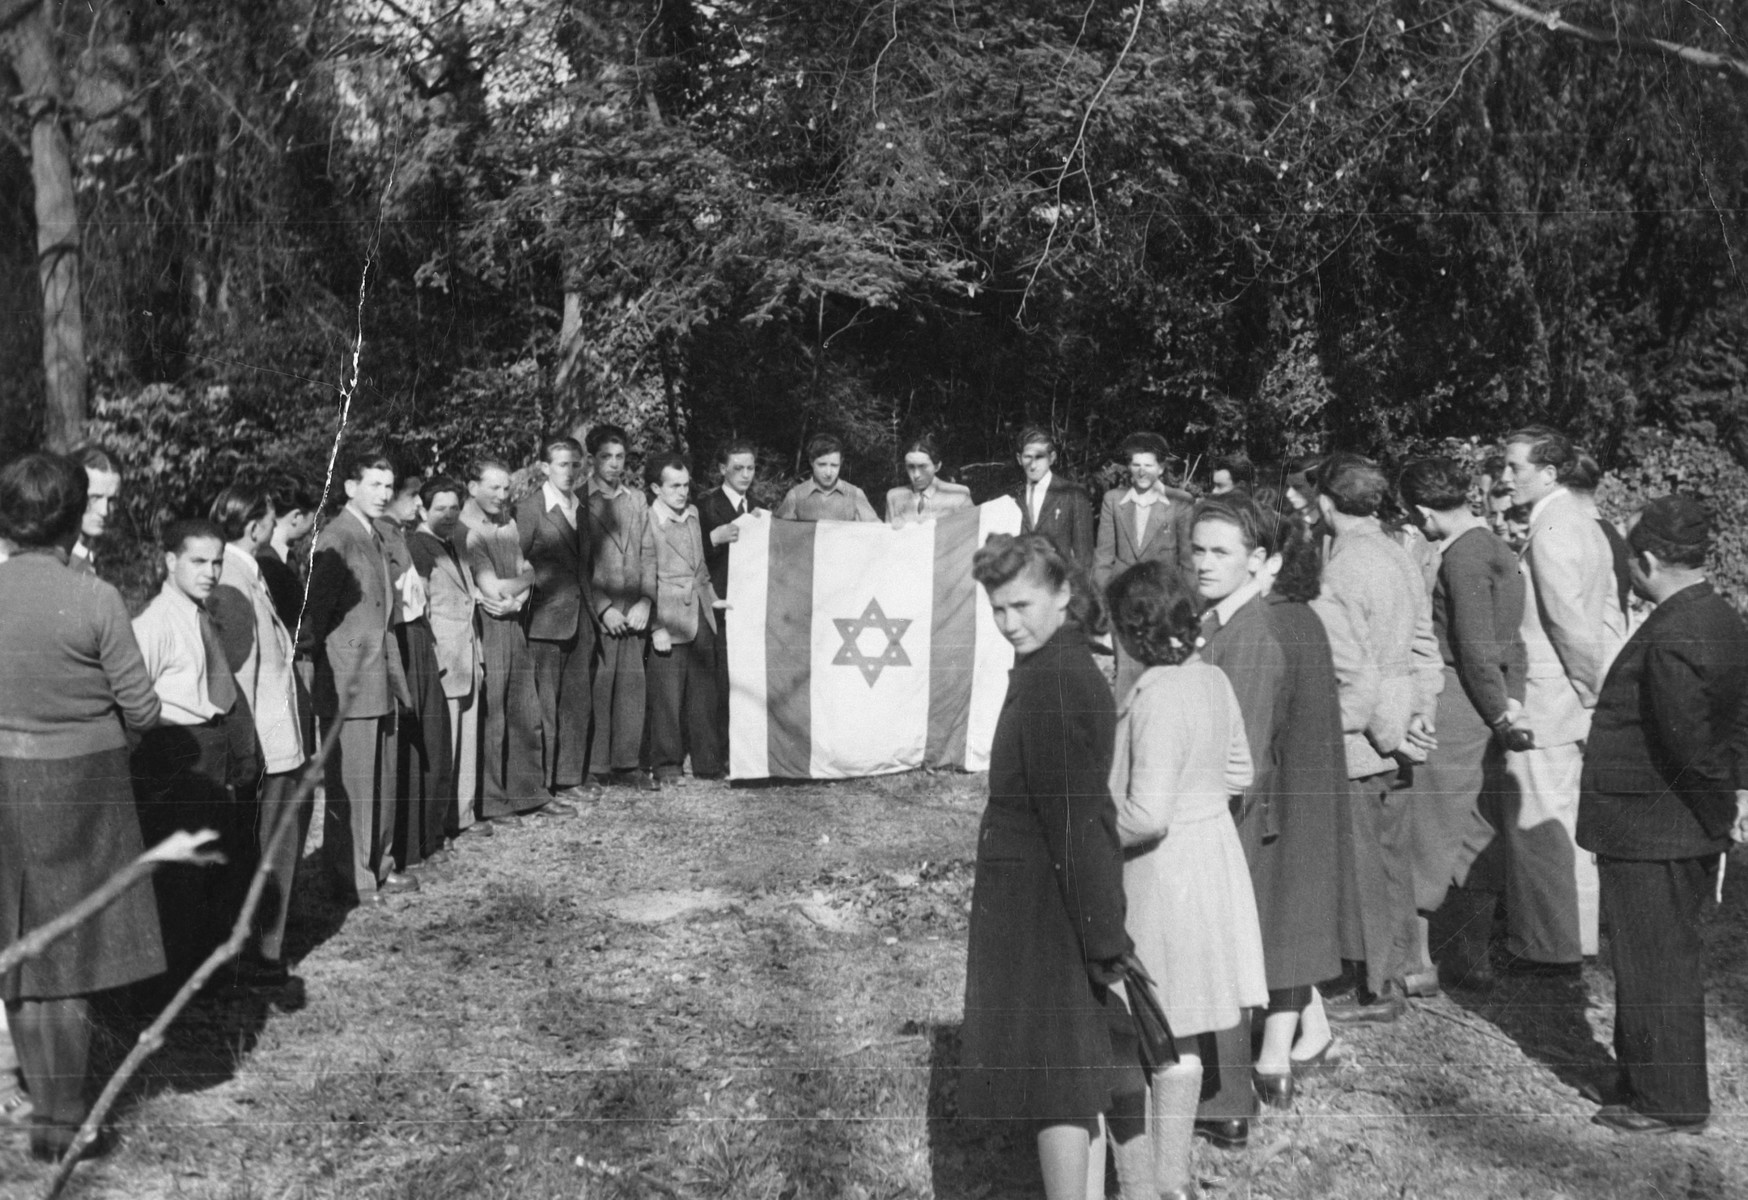 Jewish youth gather for a ceremony around a large Zionist flag in a children's home in Switzerland.  Moniek Szmulewicz is among those pictured.  Monek  Goldfinger is standing on the far right in a light colored suit.